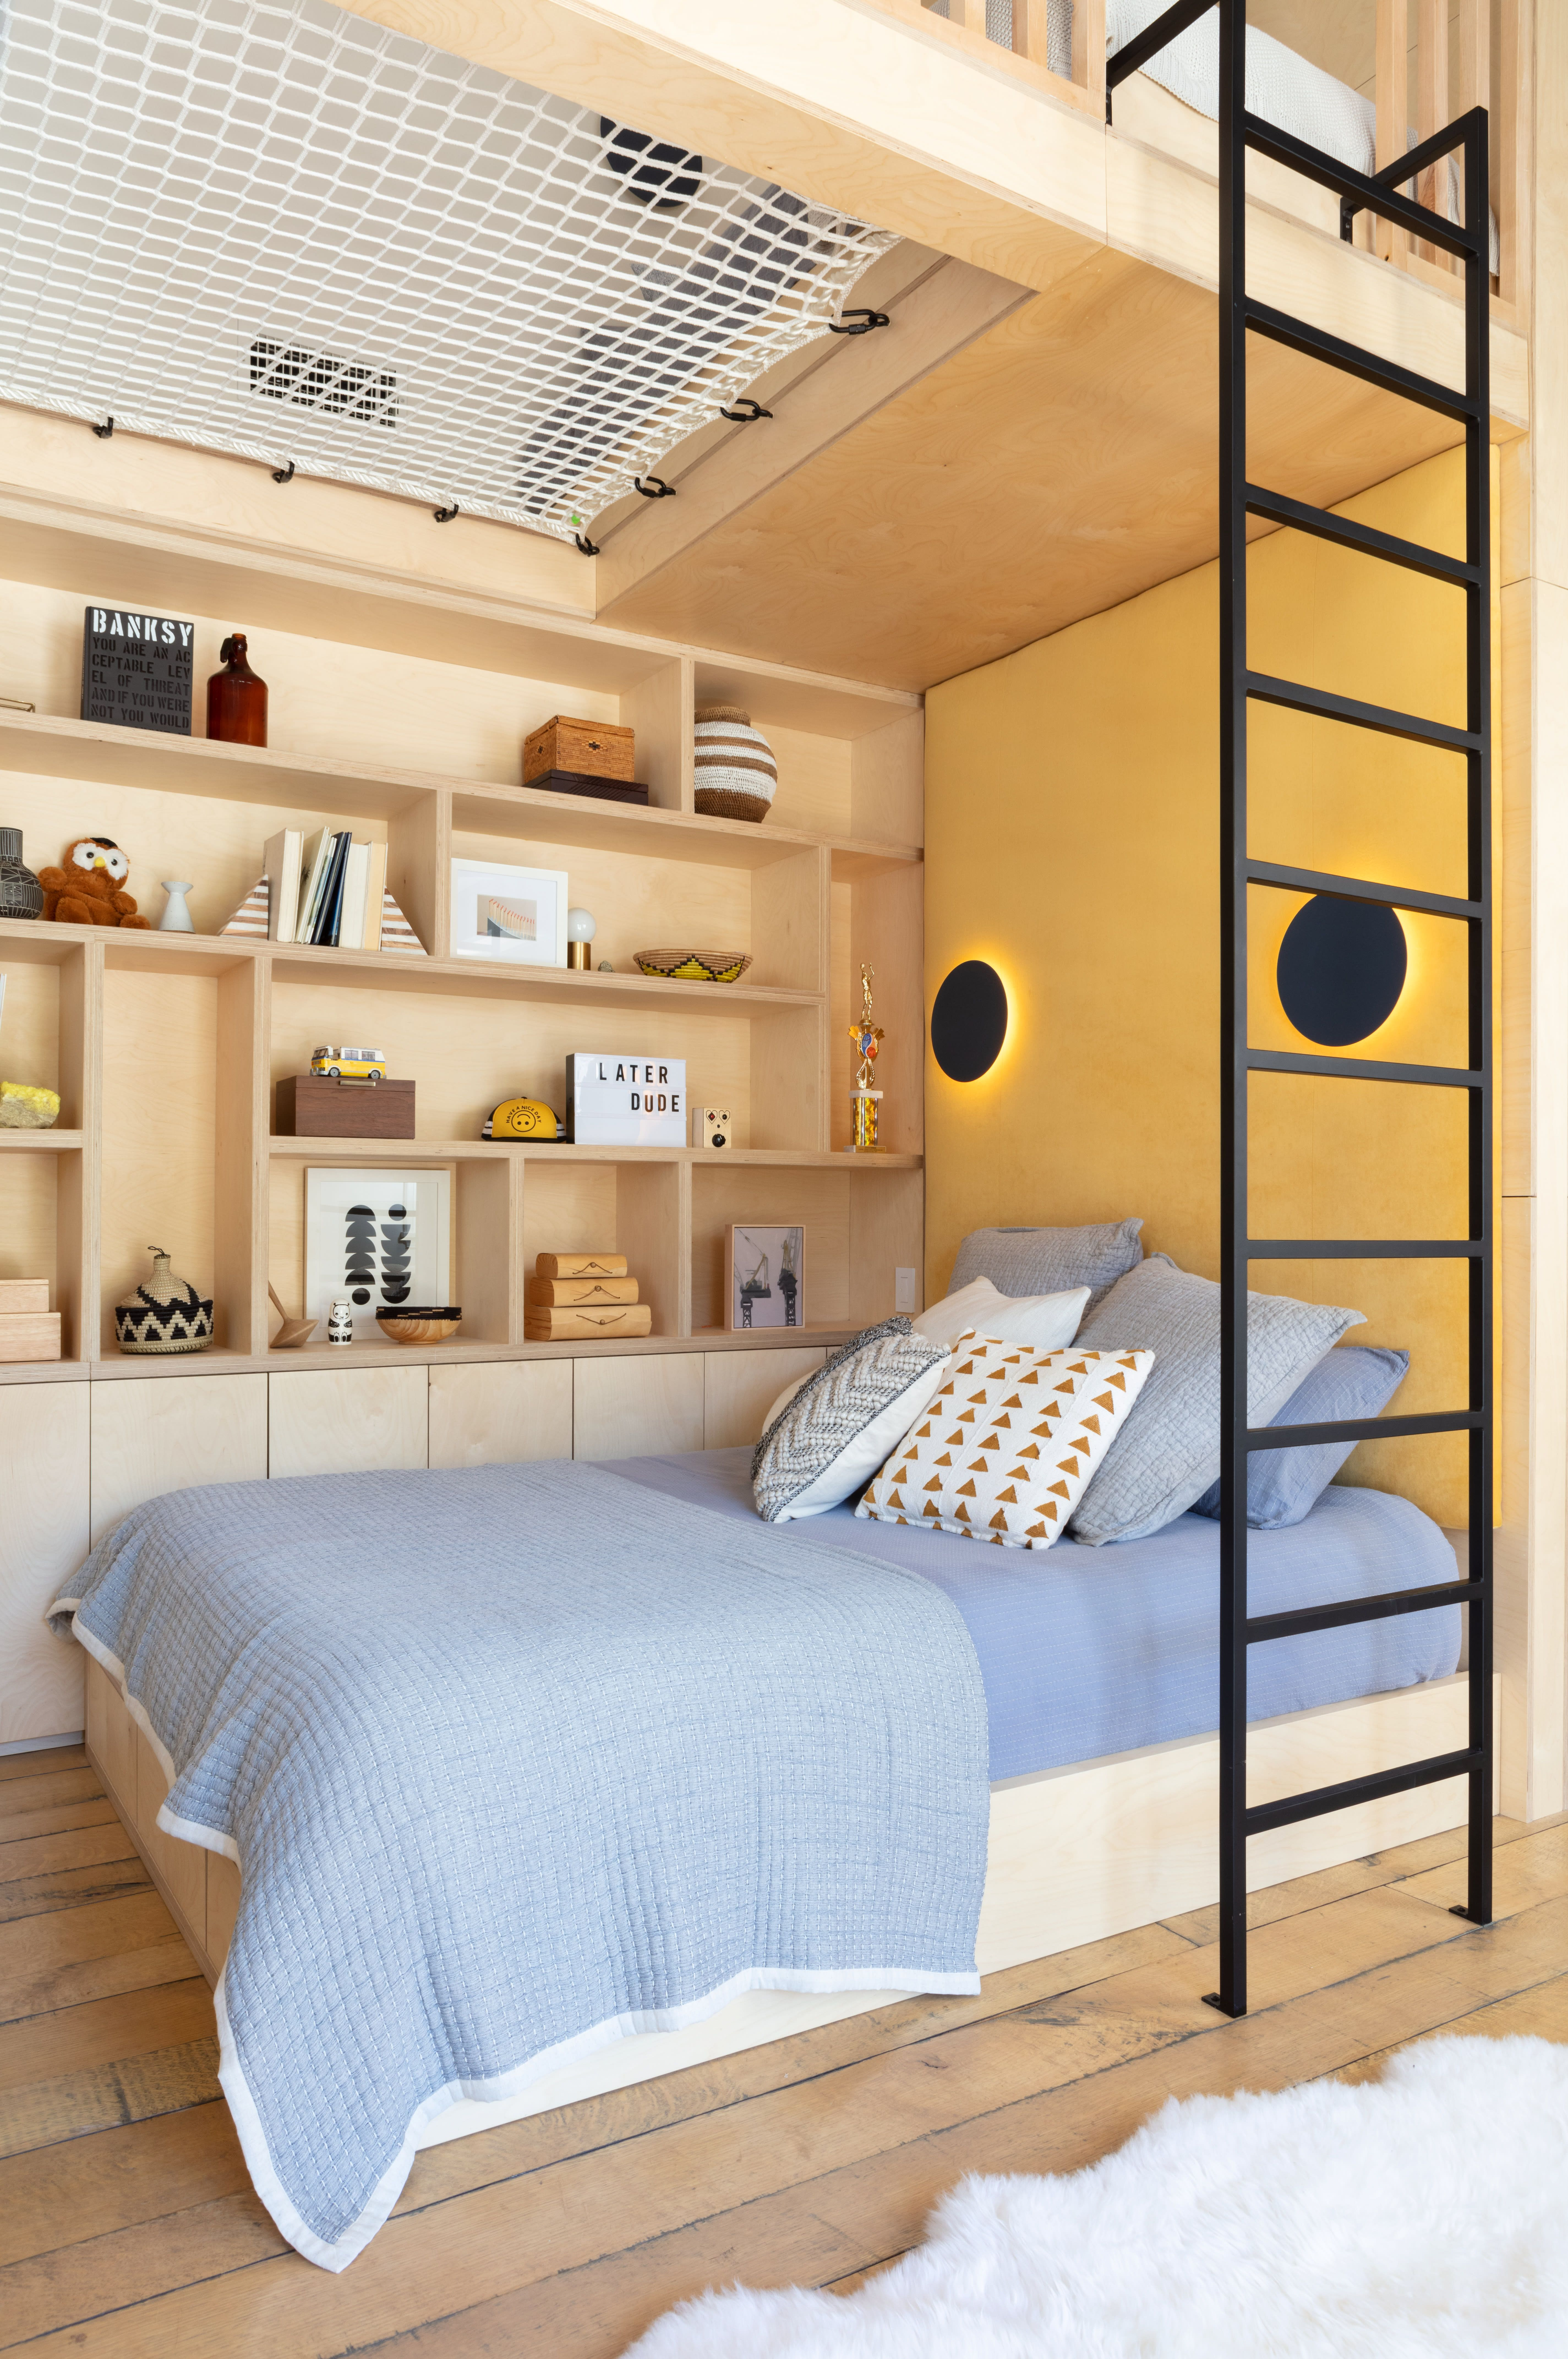 3 Kids Bedroom Ideas We Learned From This Playful La Home